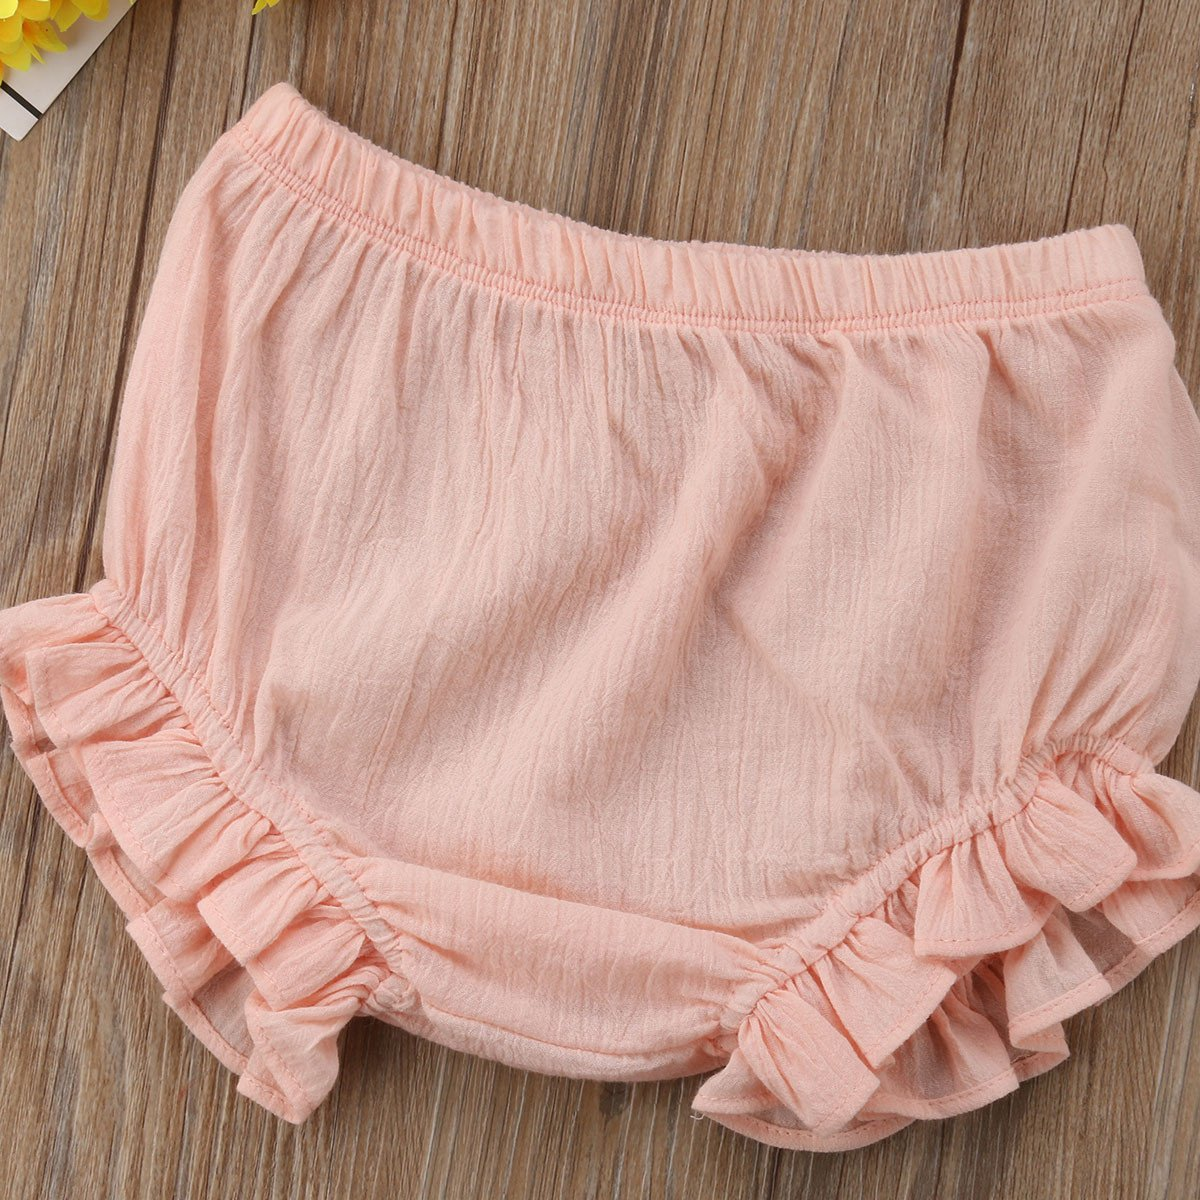 Mornbaby Baby Girls Bloomers Cotton Ruffle Panty Diaper Covers Underwear Shorts Toddler Kids Girls